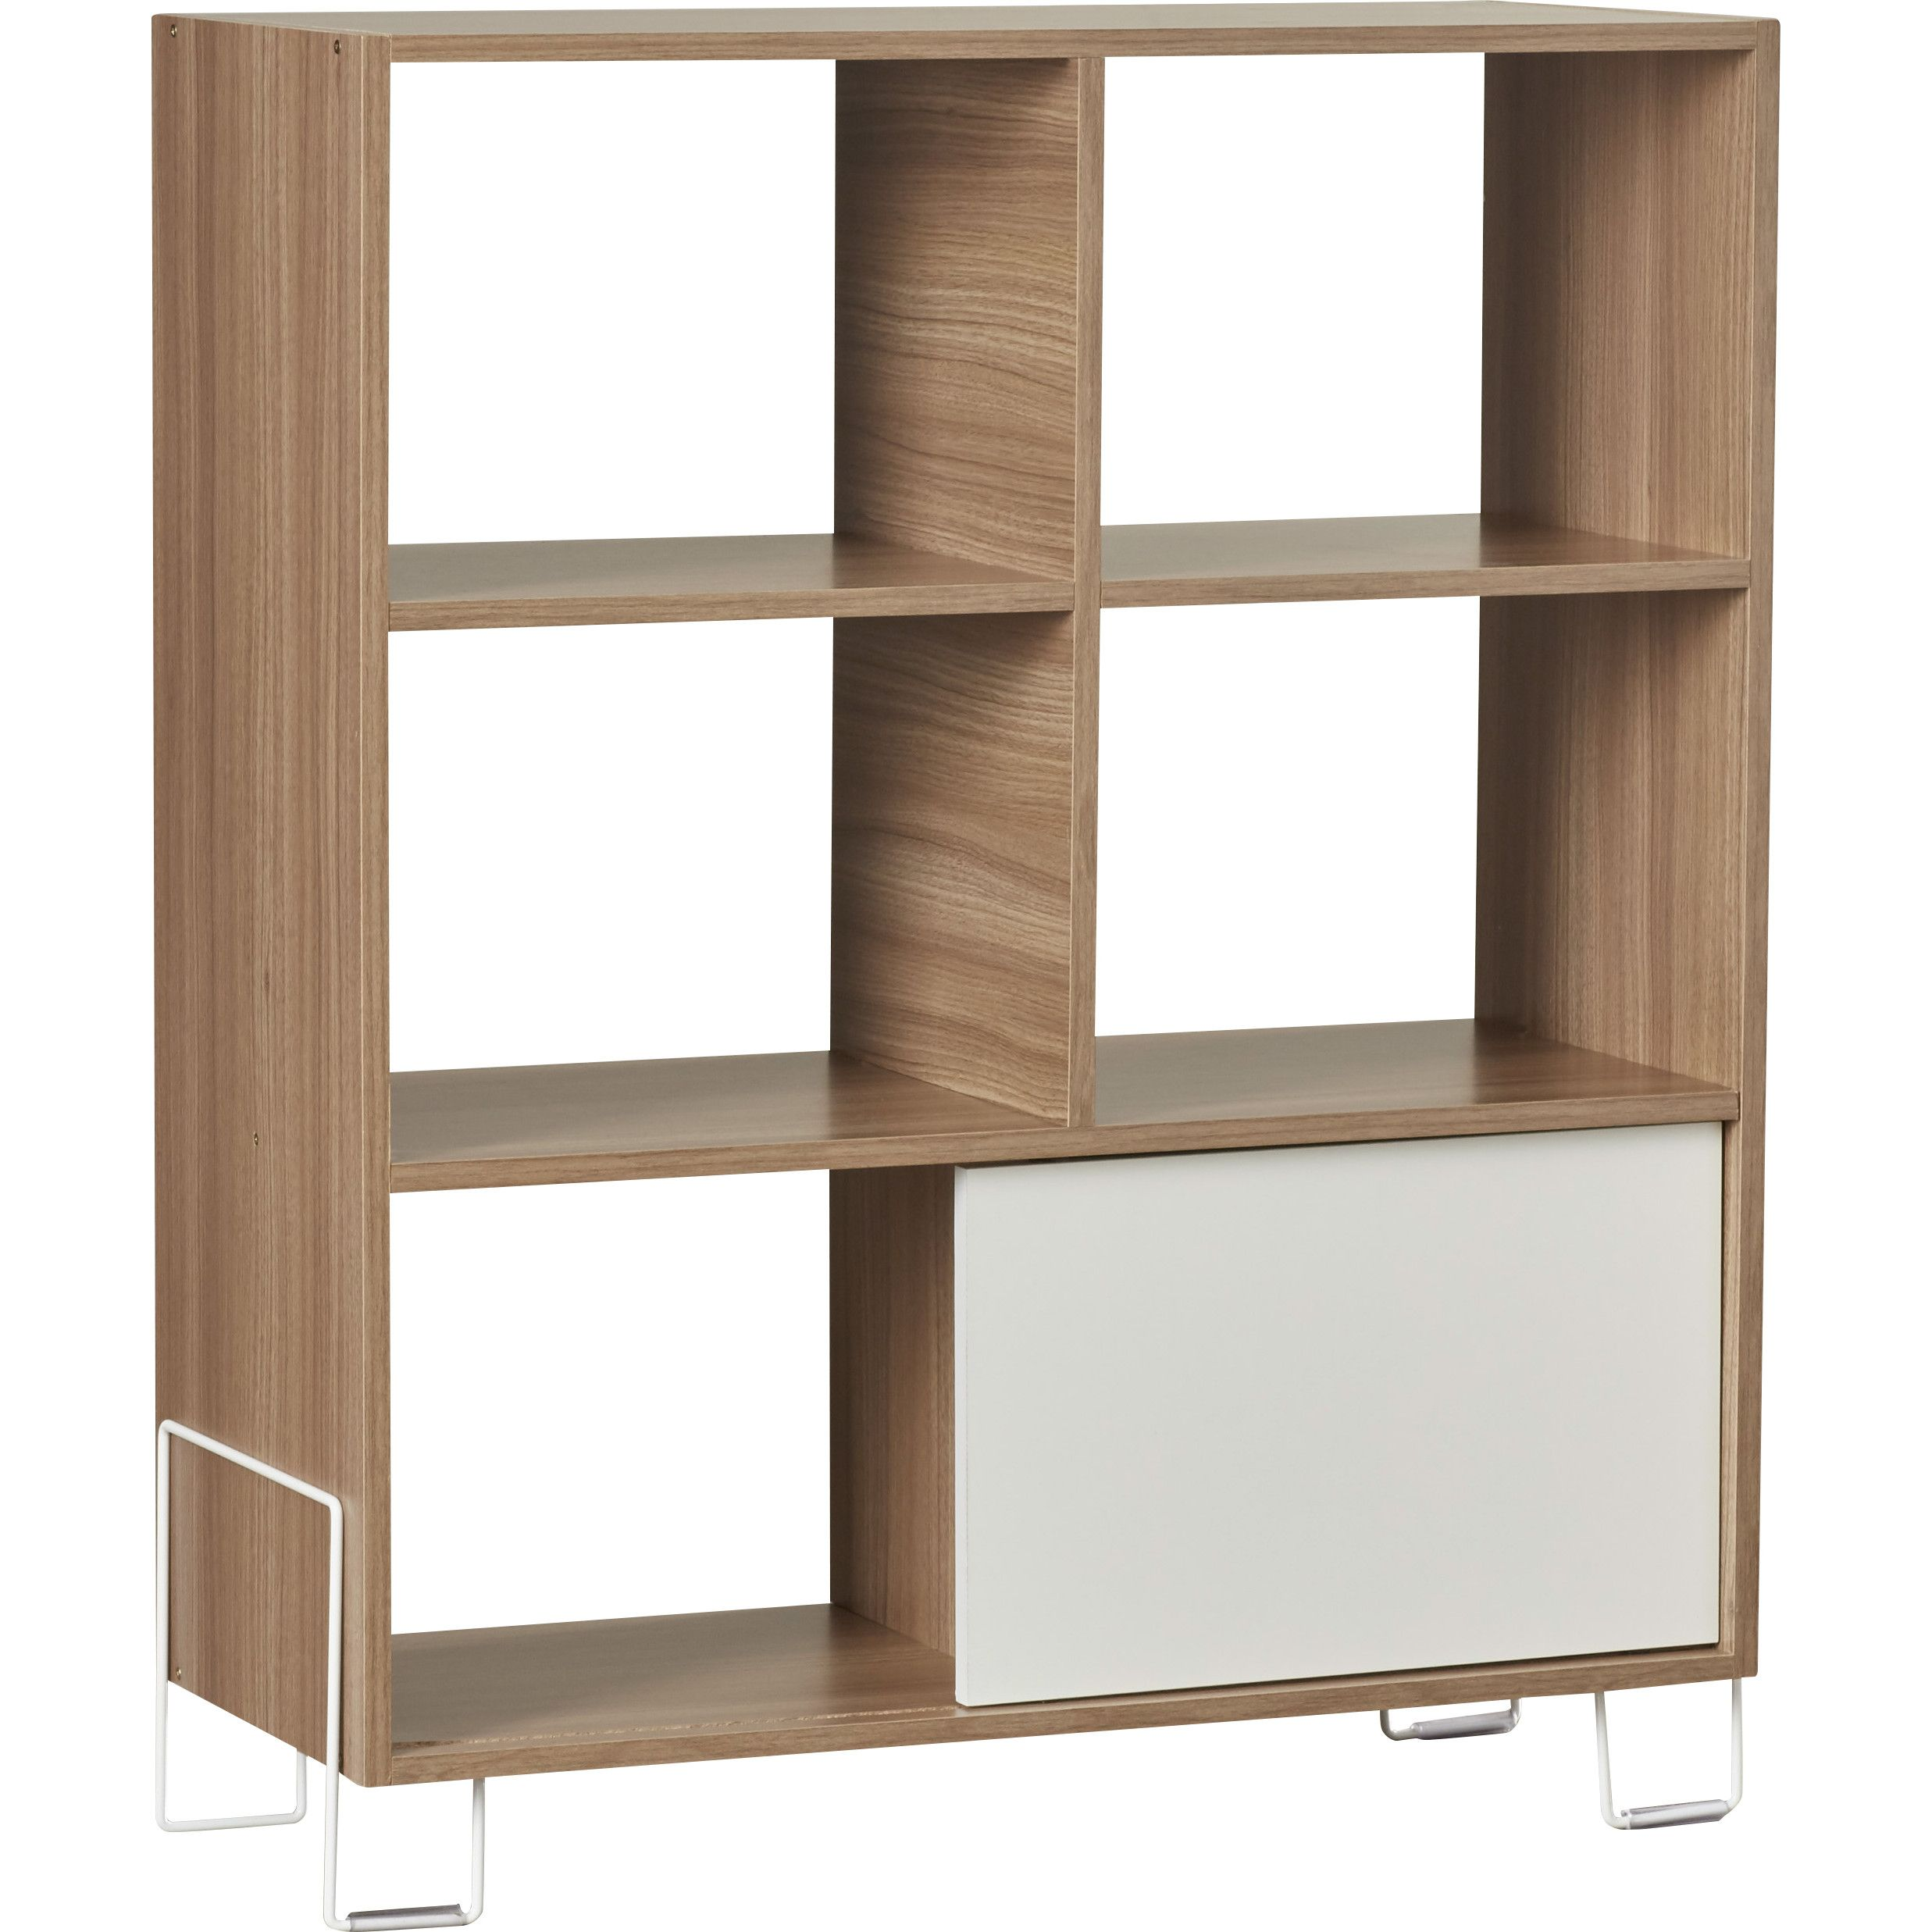 Customer Image Zoomed Bookcase, Office furniture modern